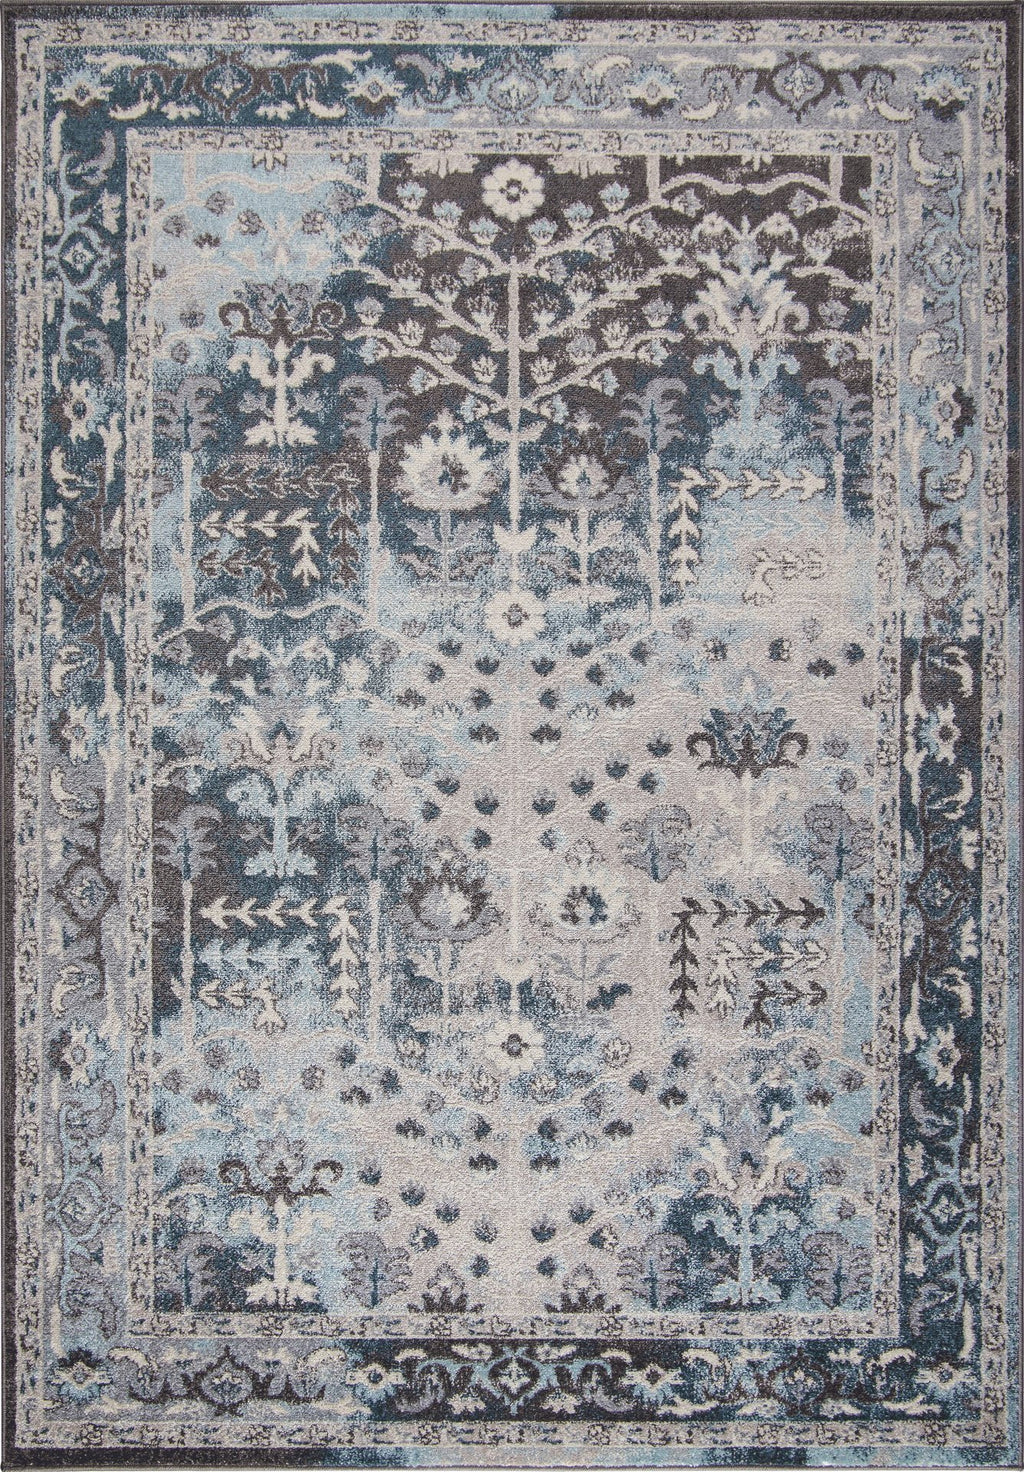 Pasific Cream Brown Blue Bordered Vintage Style Area Rug